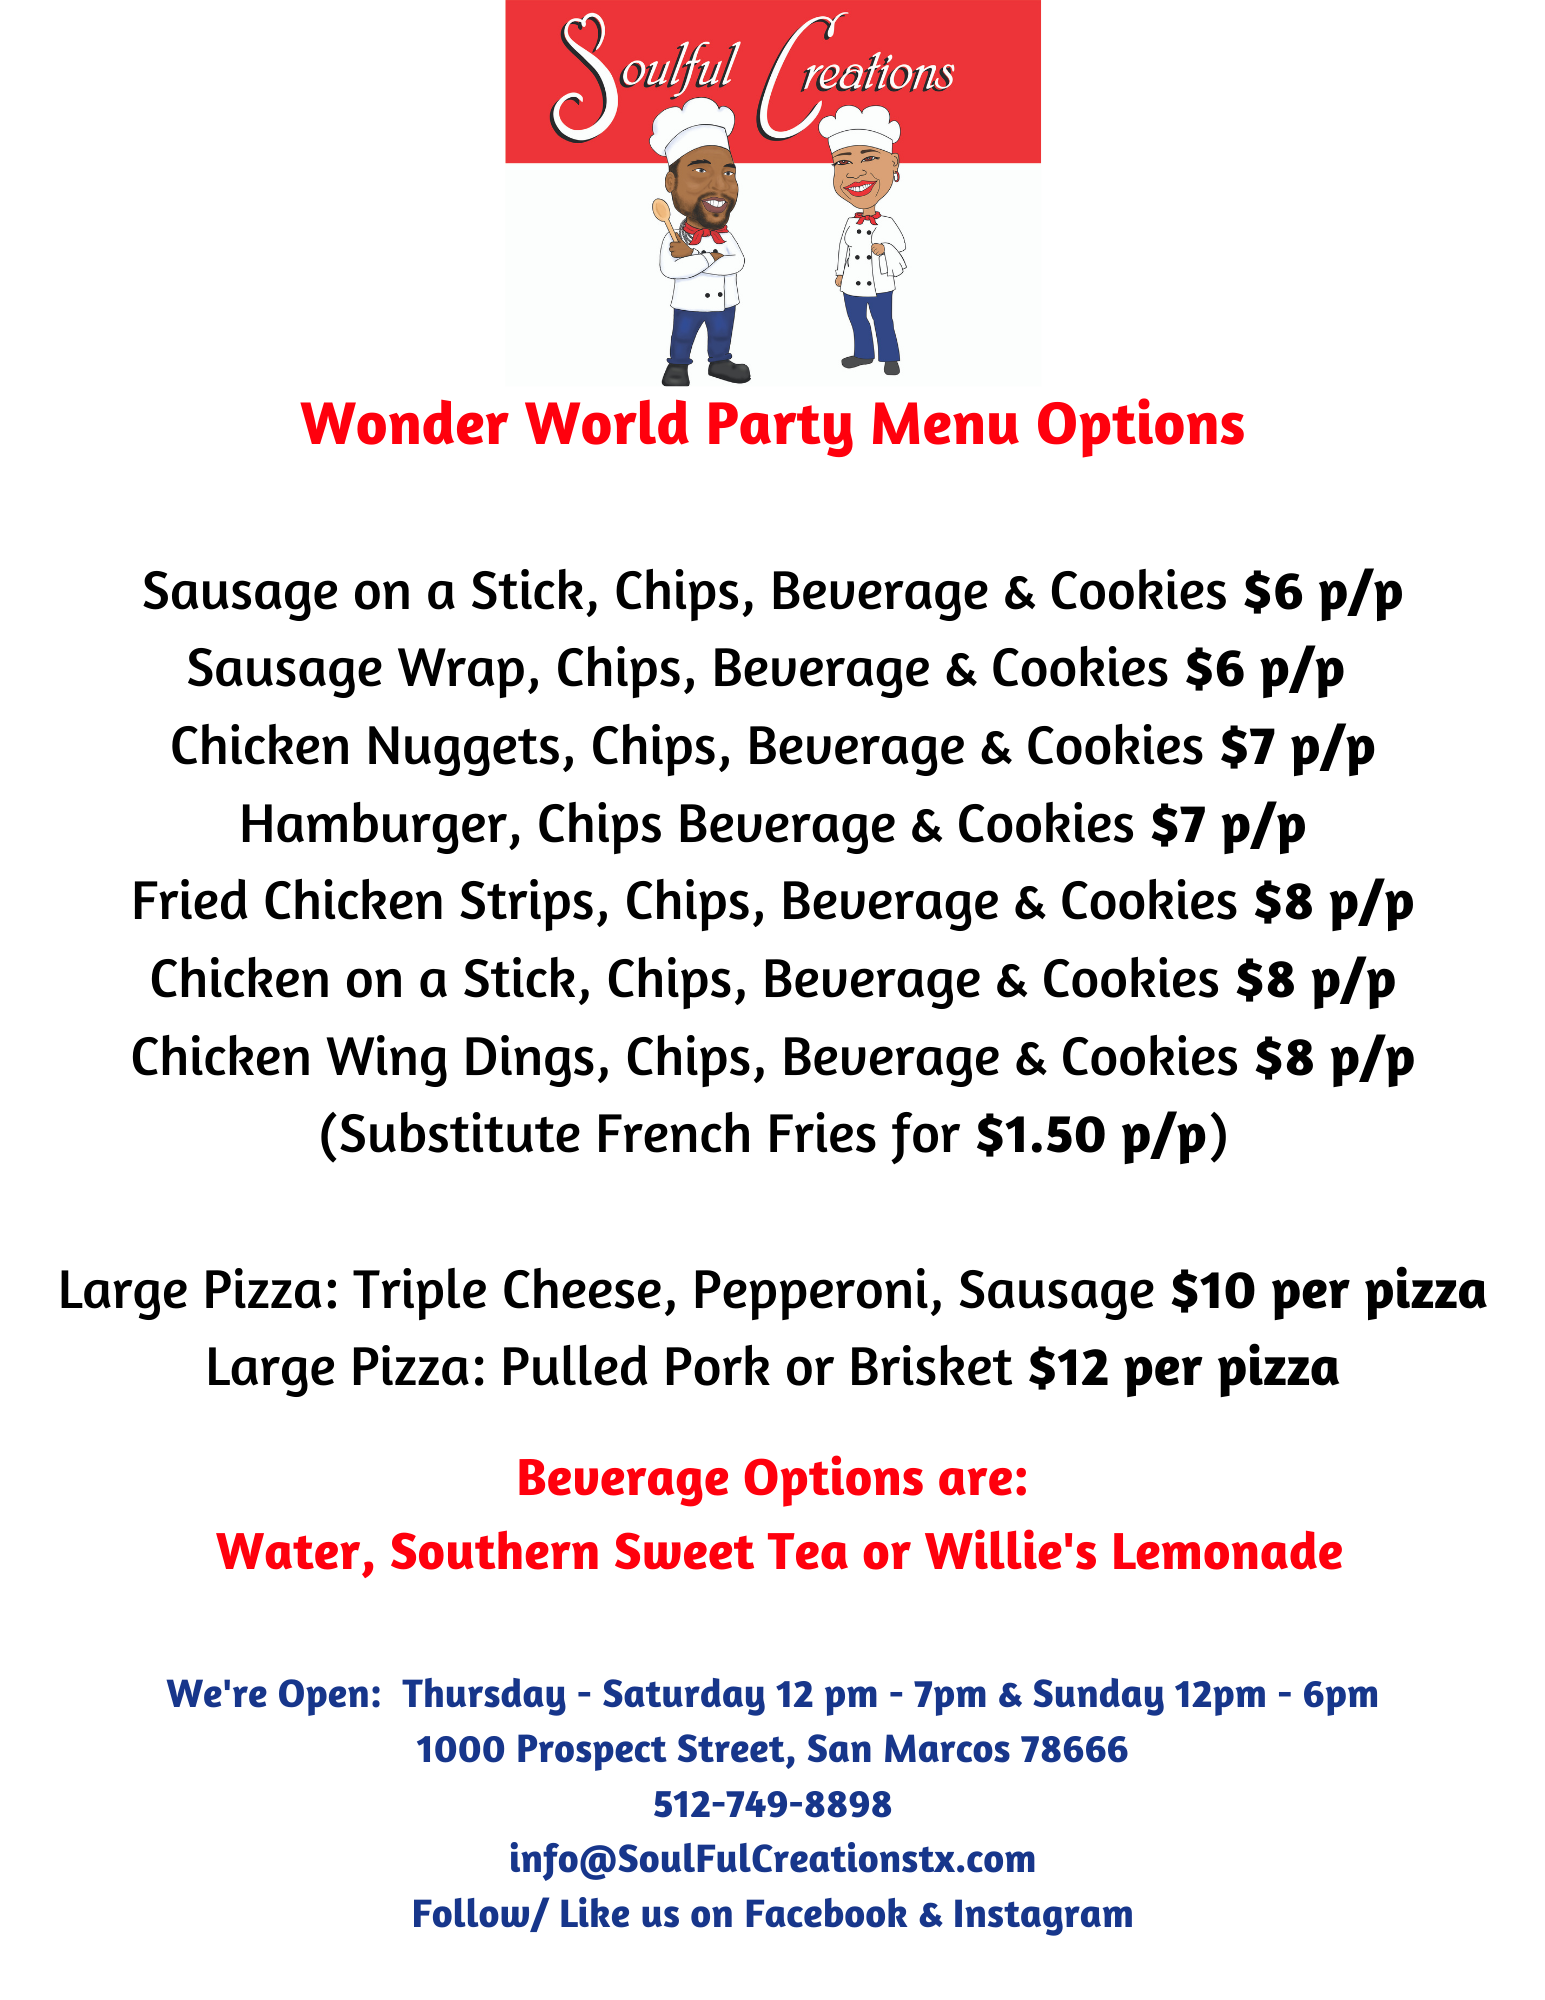 SoulFul Creations Party Options Menu.png